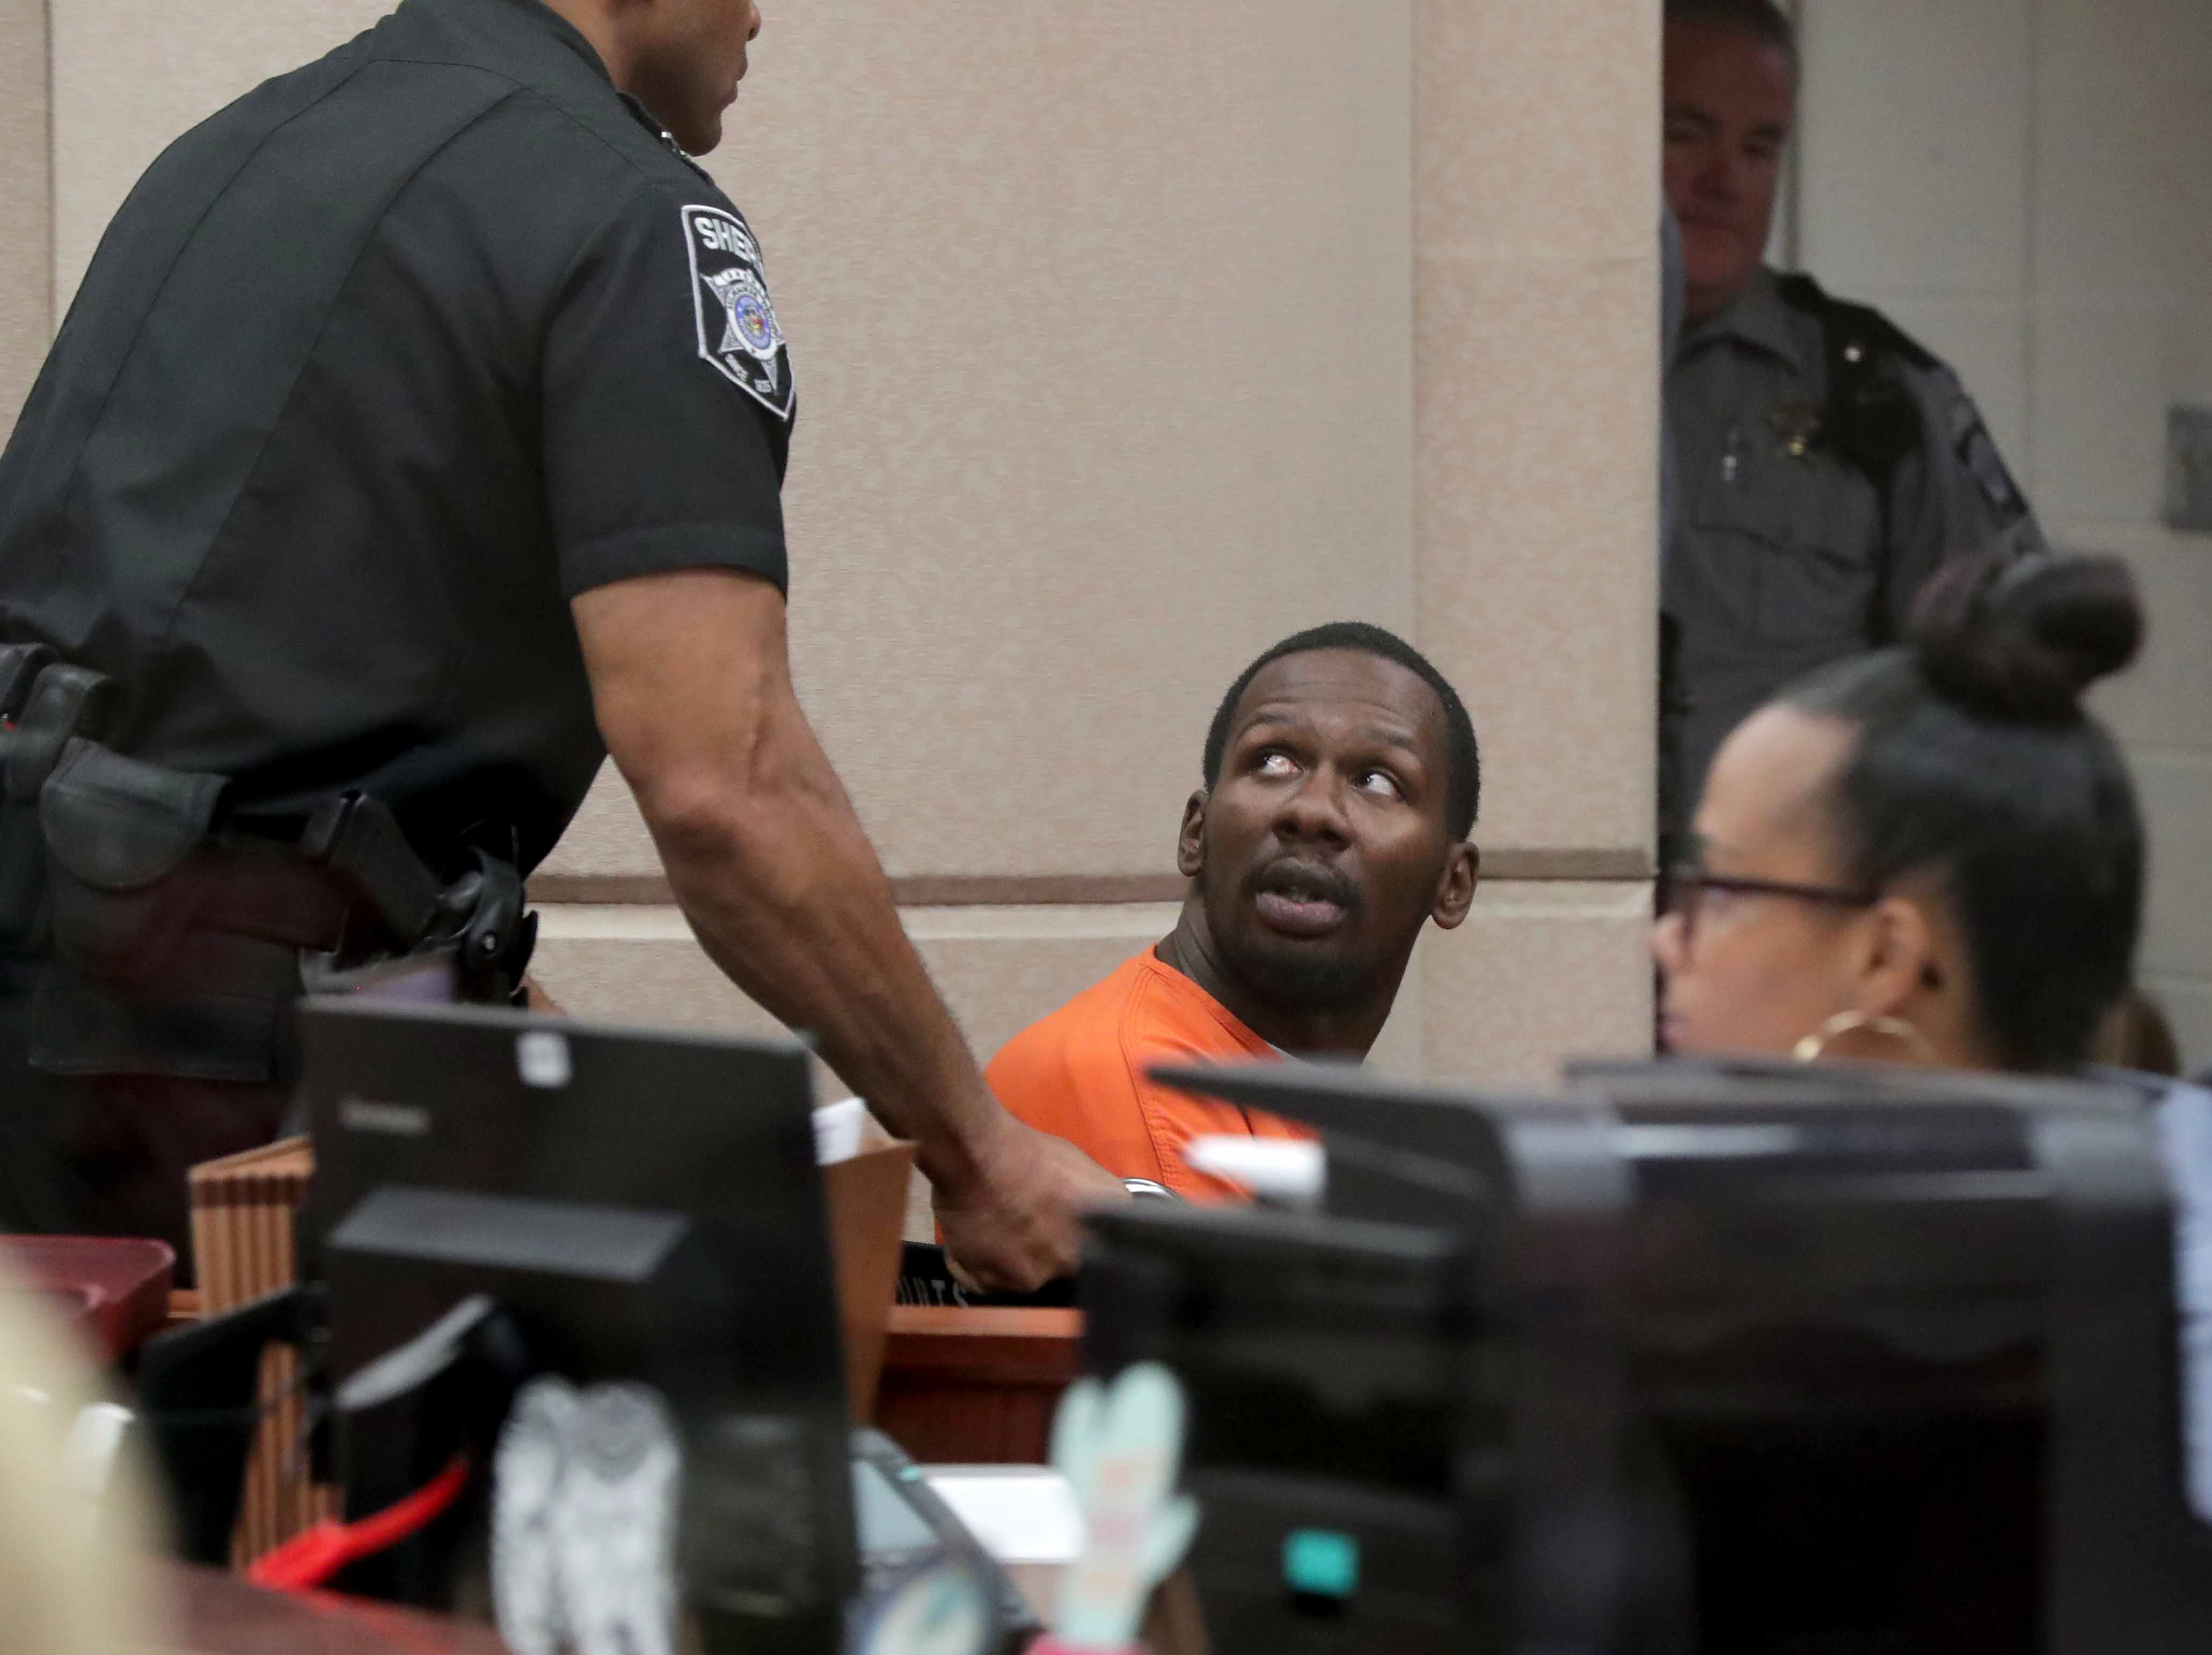 Jonathan Copeland Jr., 30, who is charged in the fatal shooting of Milwaukee Police Officer Michael Michalski, is taken out of court after he appeared  on Thursday.